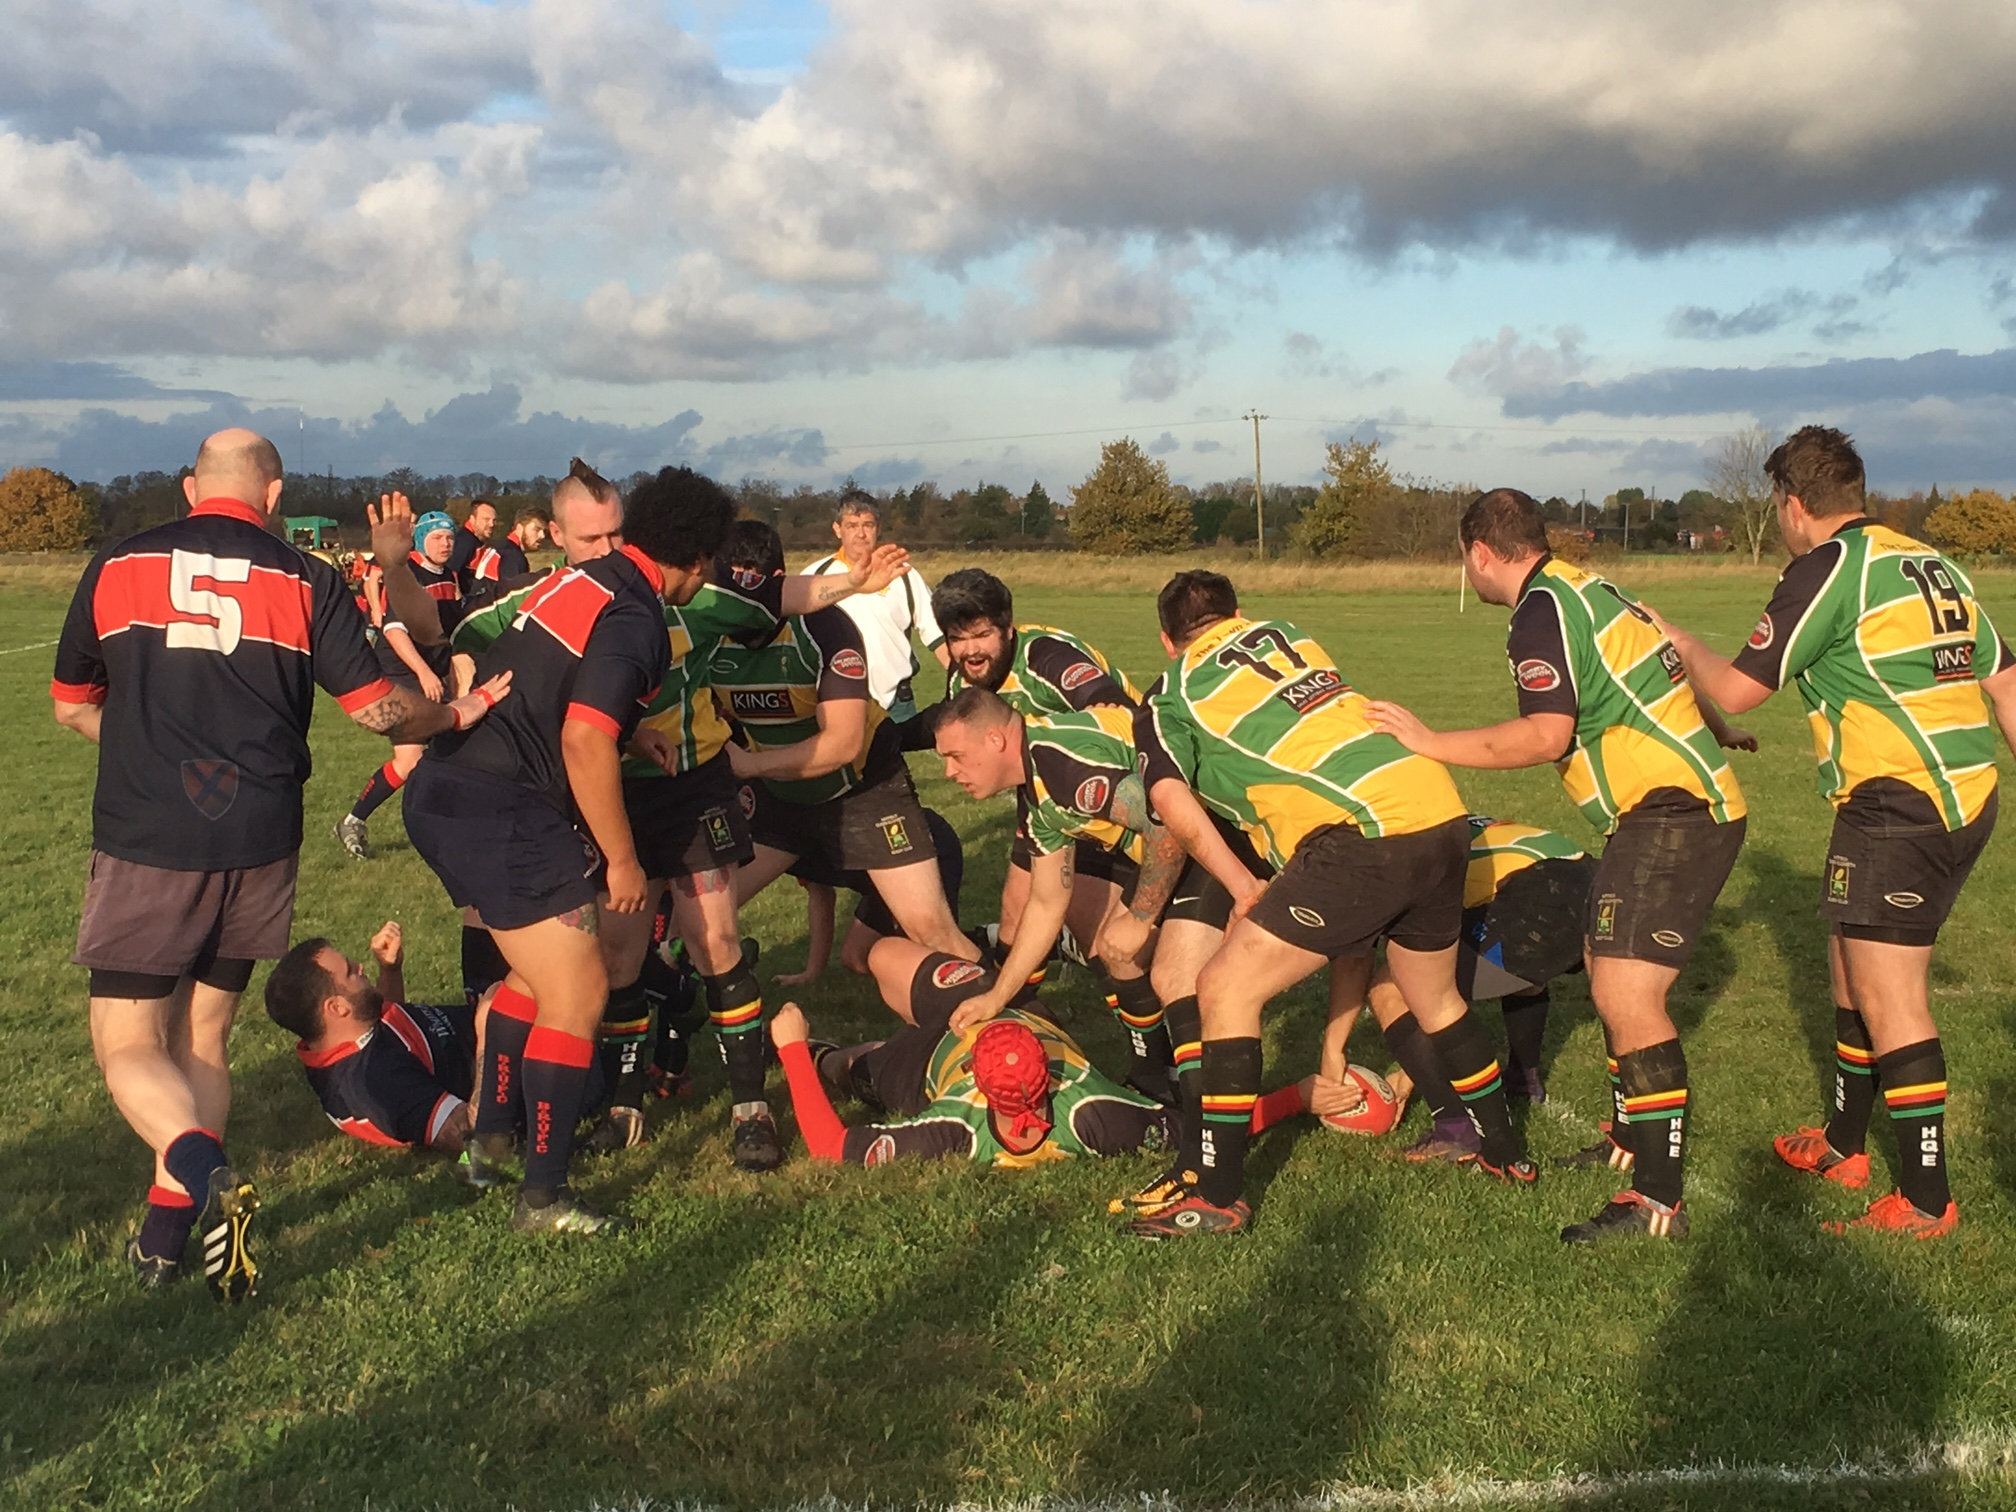 Hatfield QE RFC v Biggleswade RFC